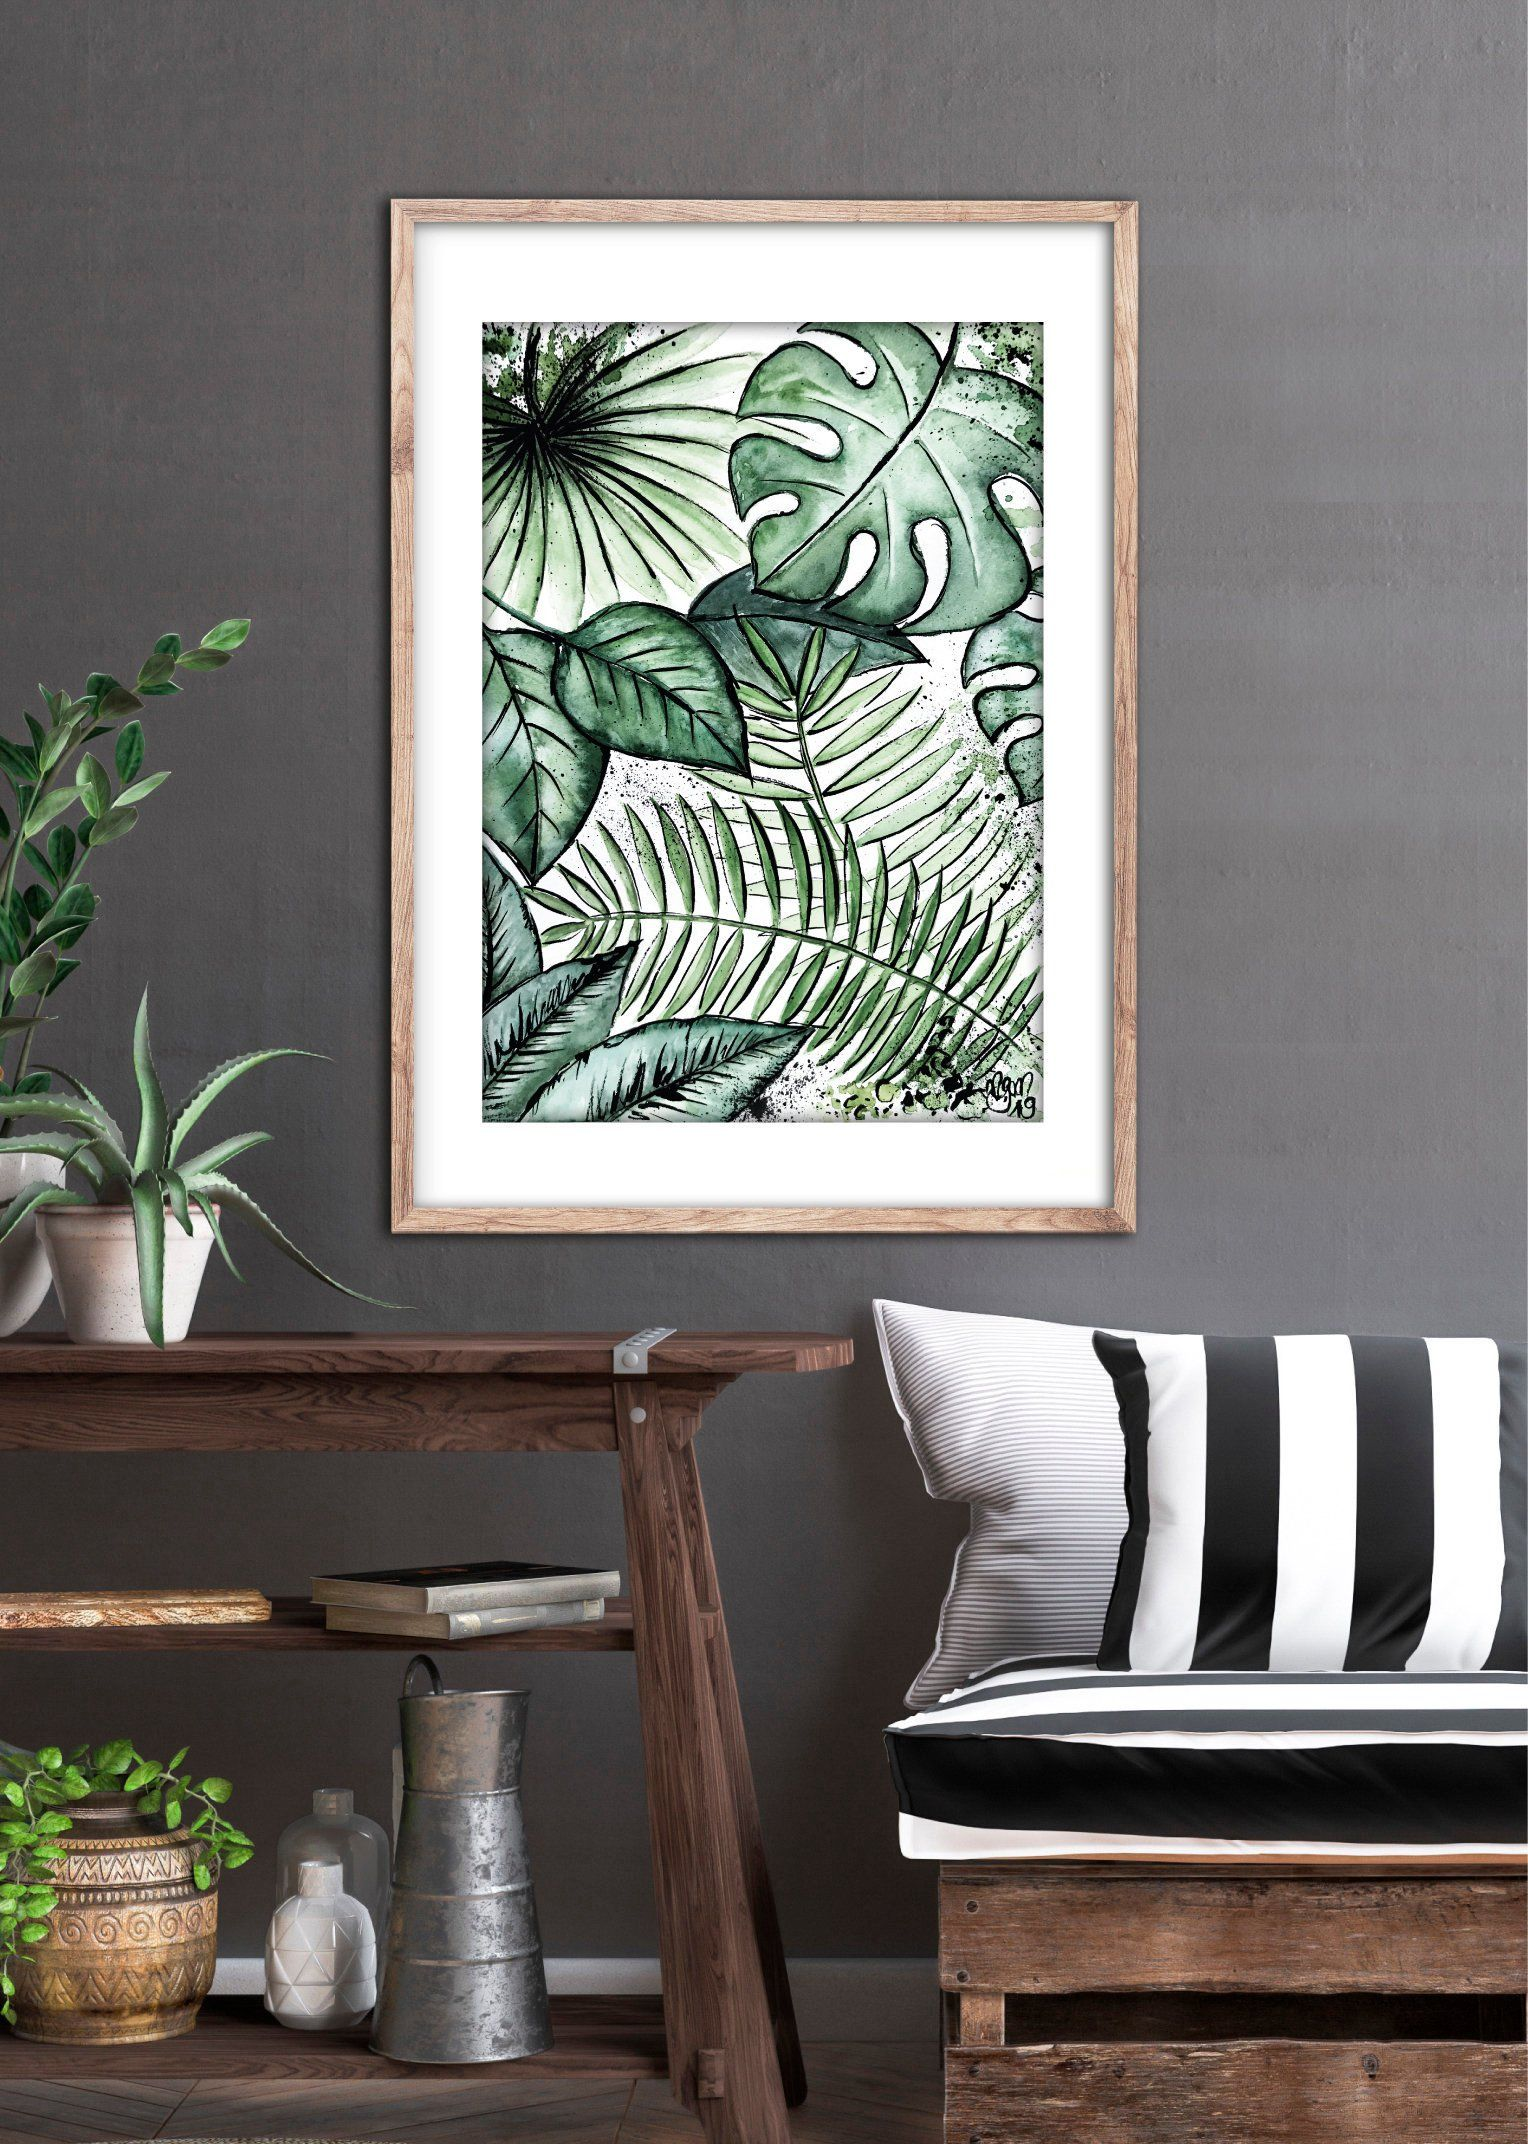 JUNGLE Watercolor-ART, Fineartprint-Poster, Aquarell/Watercolor Botanical Plant